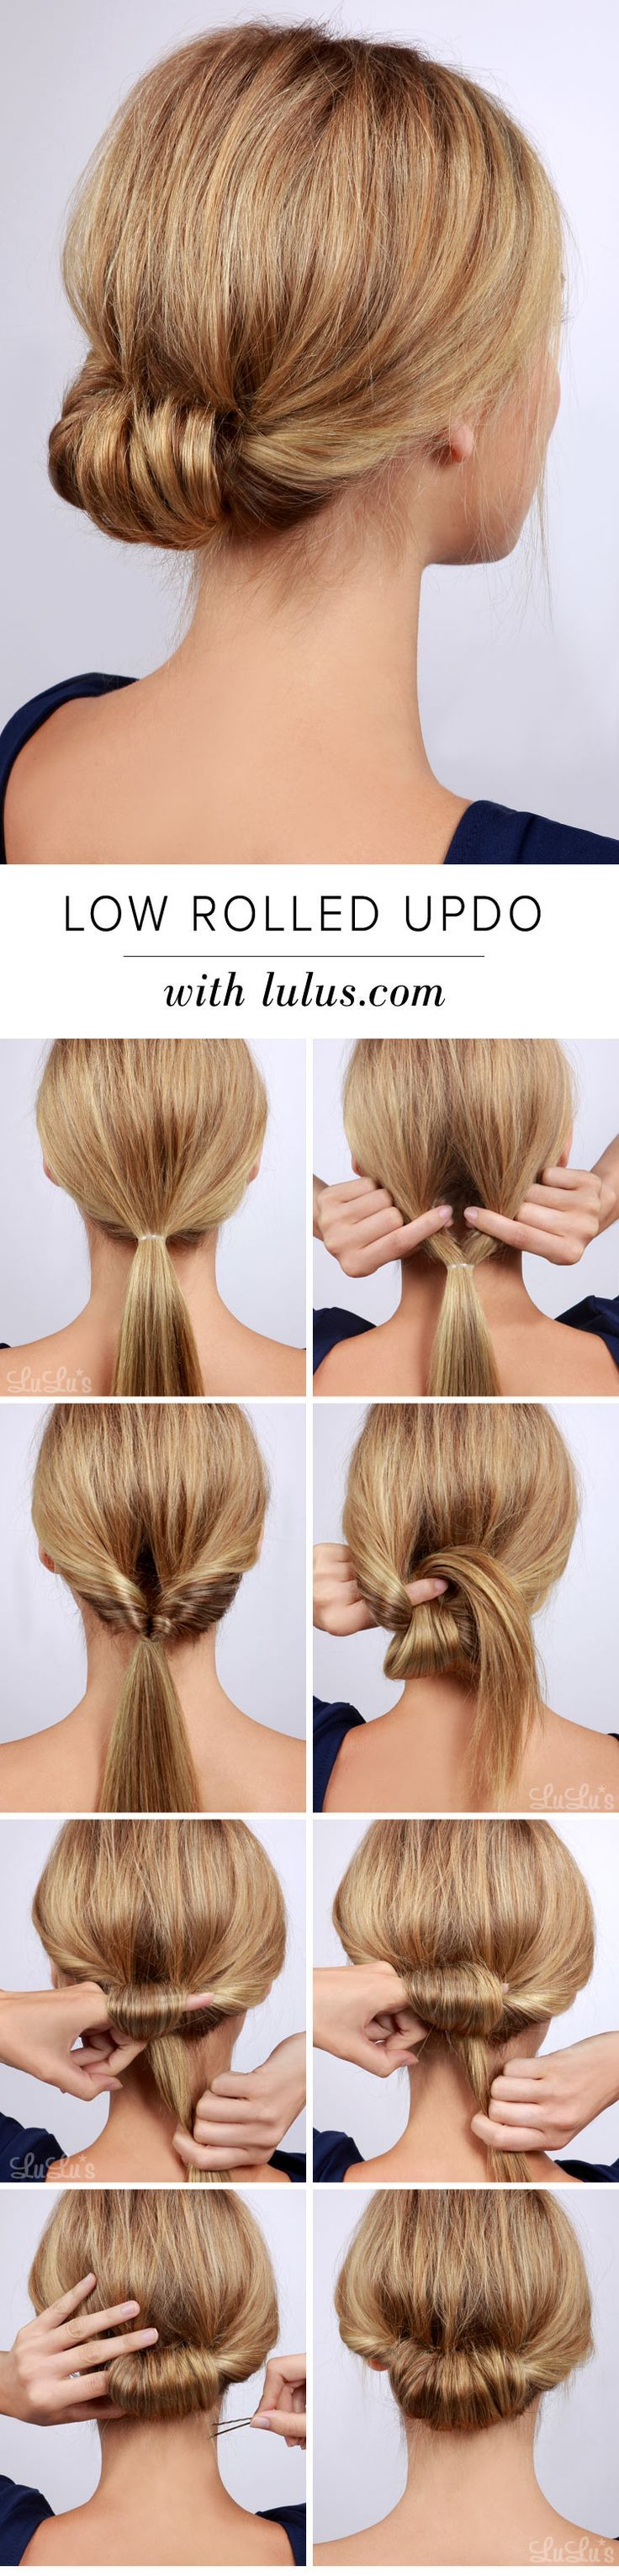 LuLu*s How-To: Low Rolled Updo Hair Tutorial at http://LuLus.com!